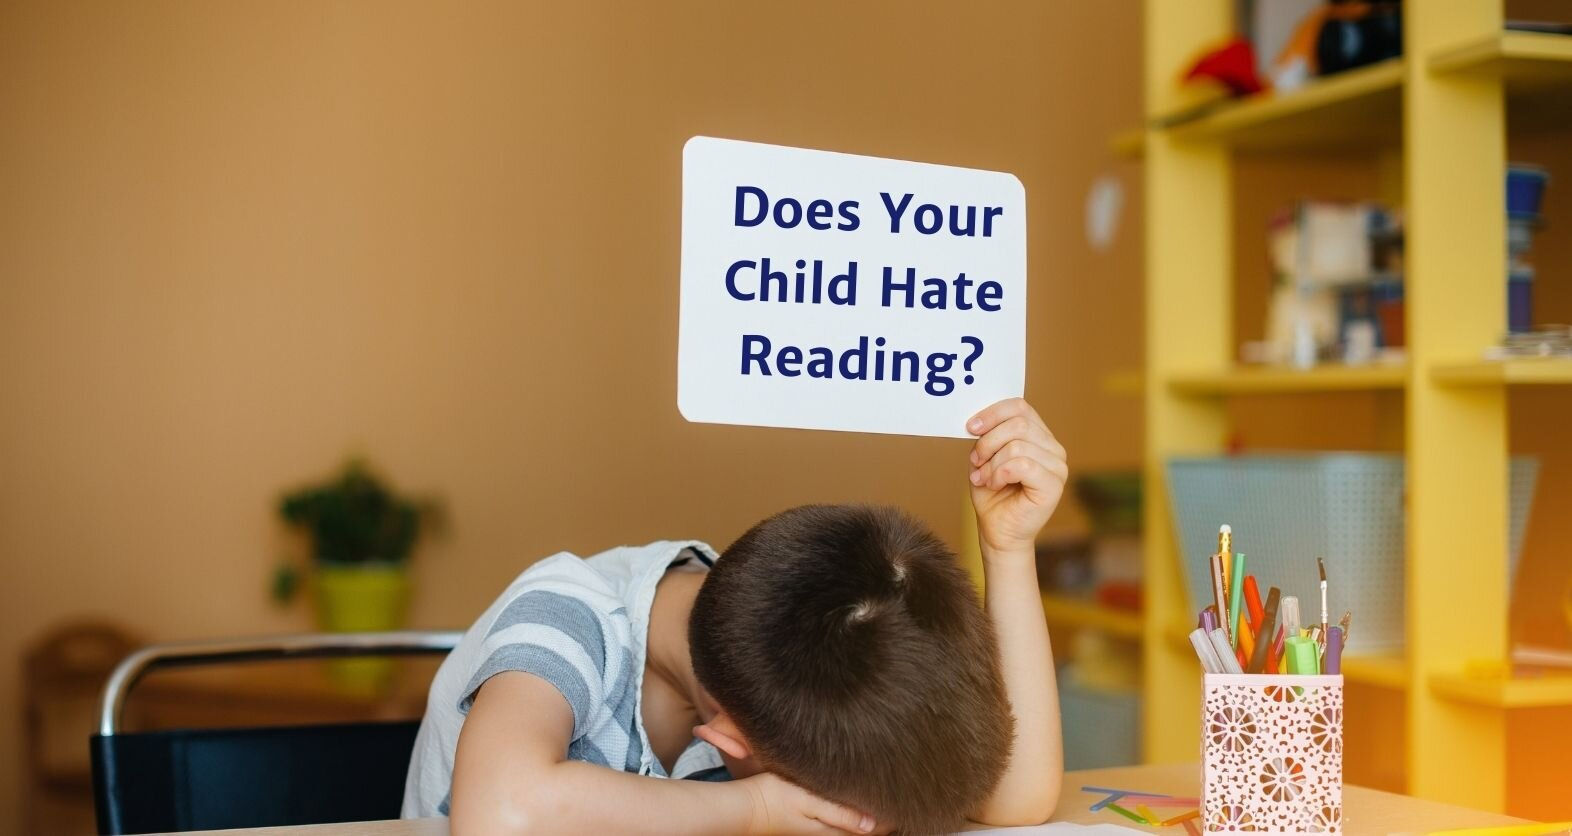 Does Your Child Hate Reading?